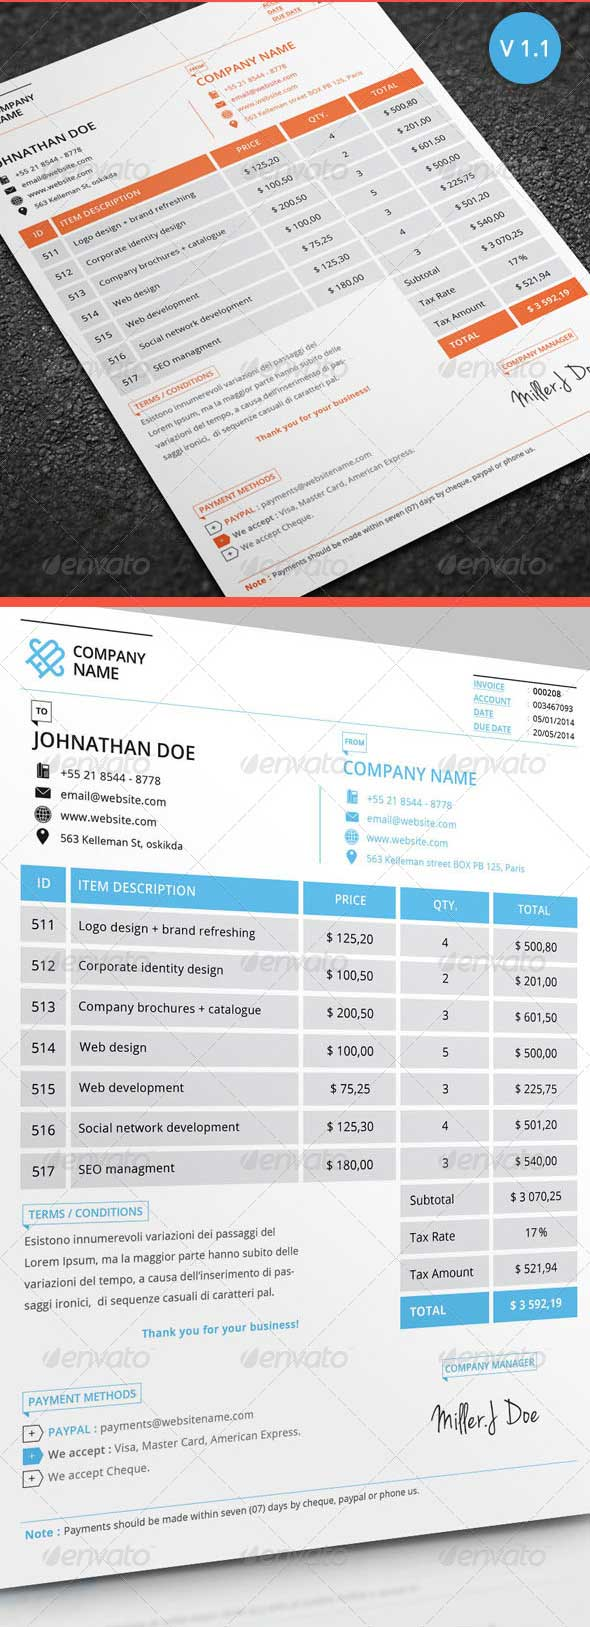 professional-business-invoice